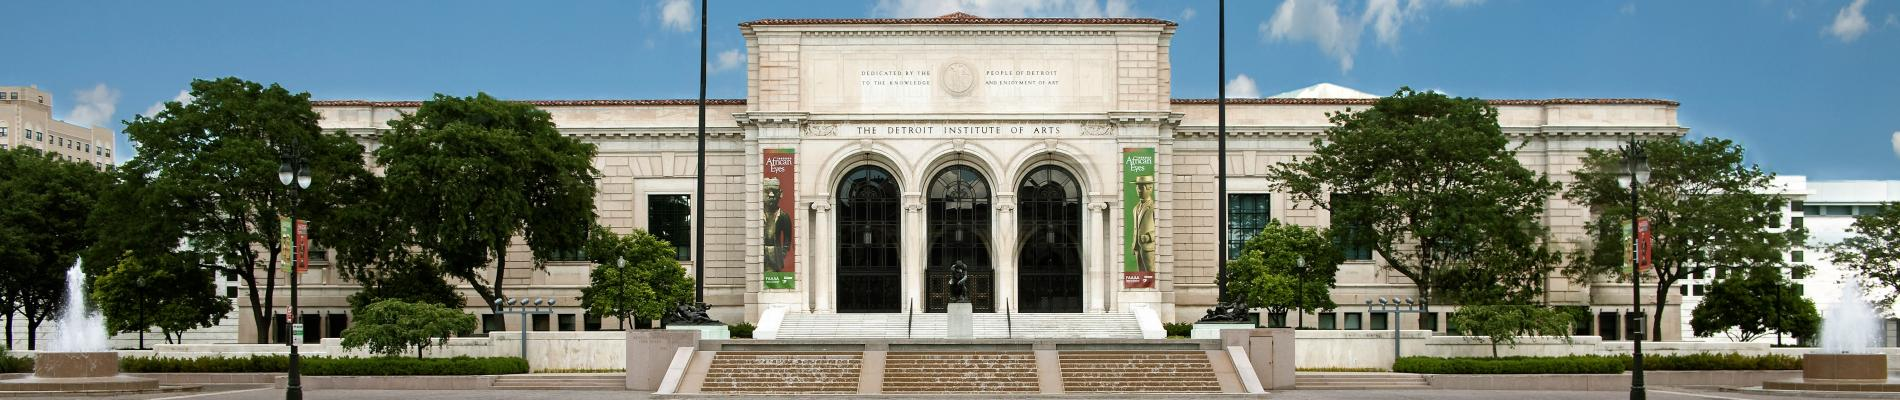 Detroit Institute of Arts A - Z Tour & Cafe DIA